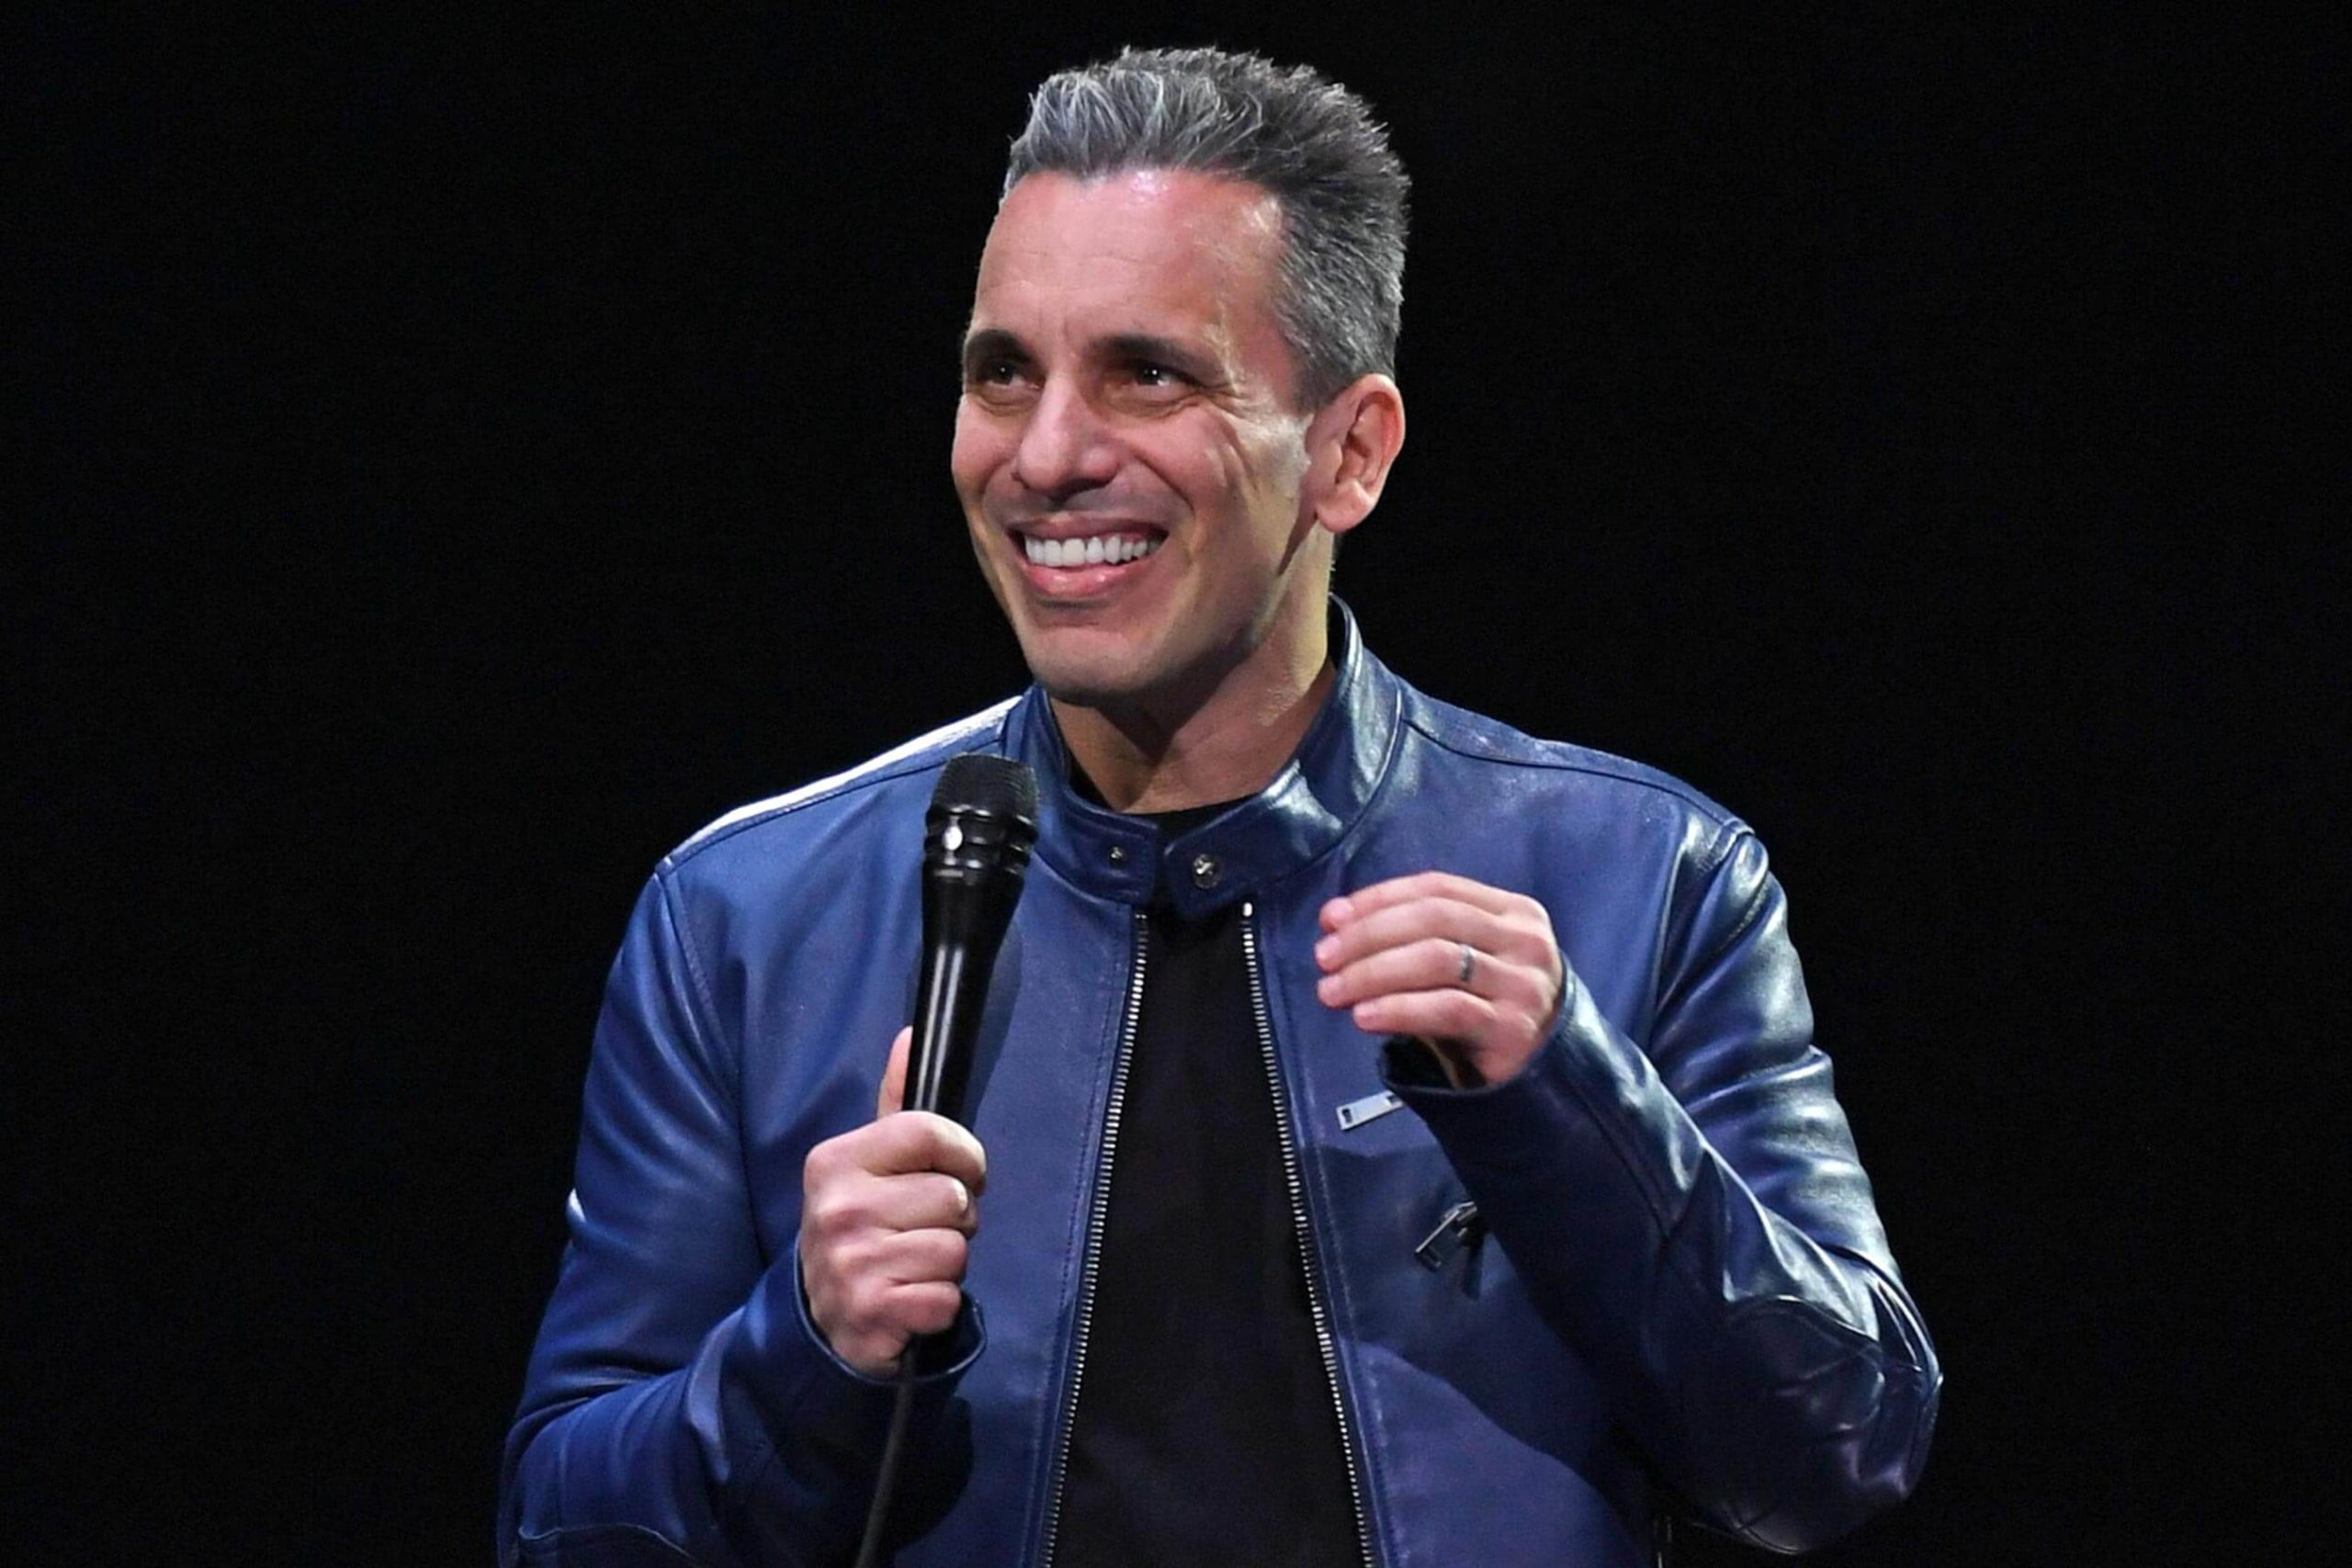 Sebastian Maniscalco Bio: Age, Height, Wife, Net Worth & Pictures